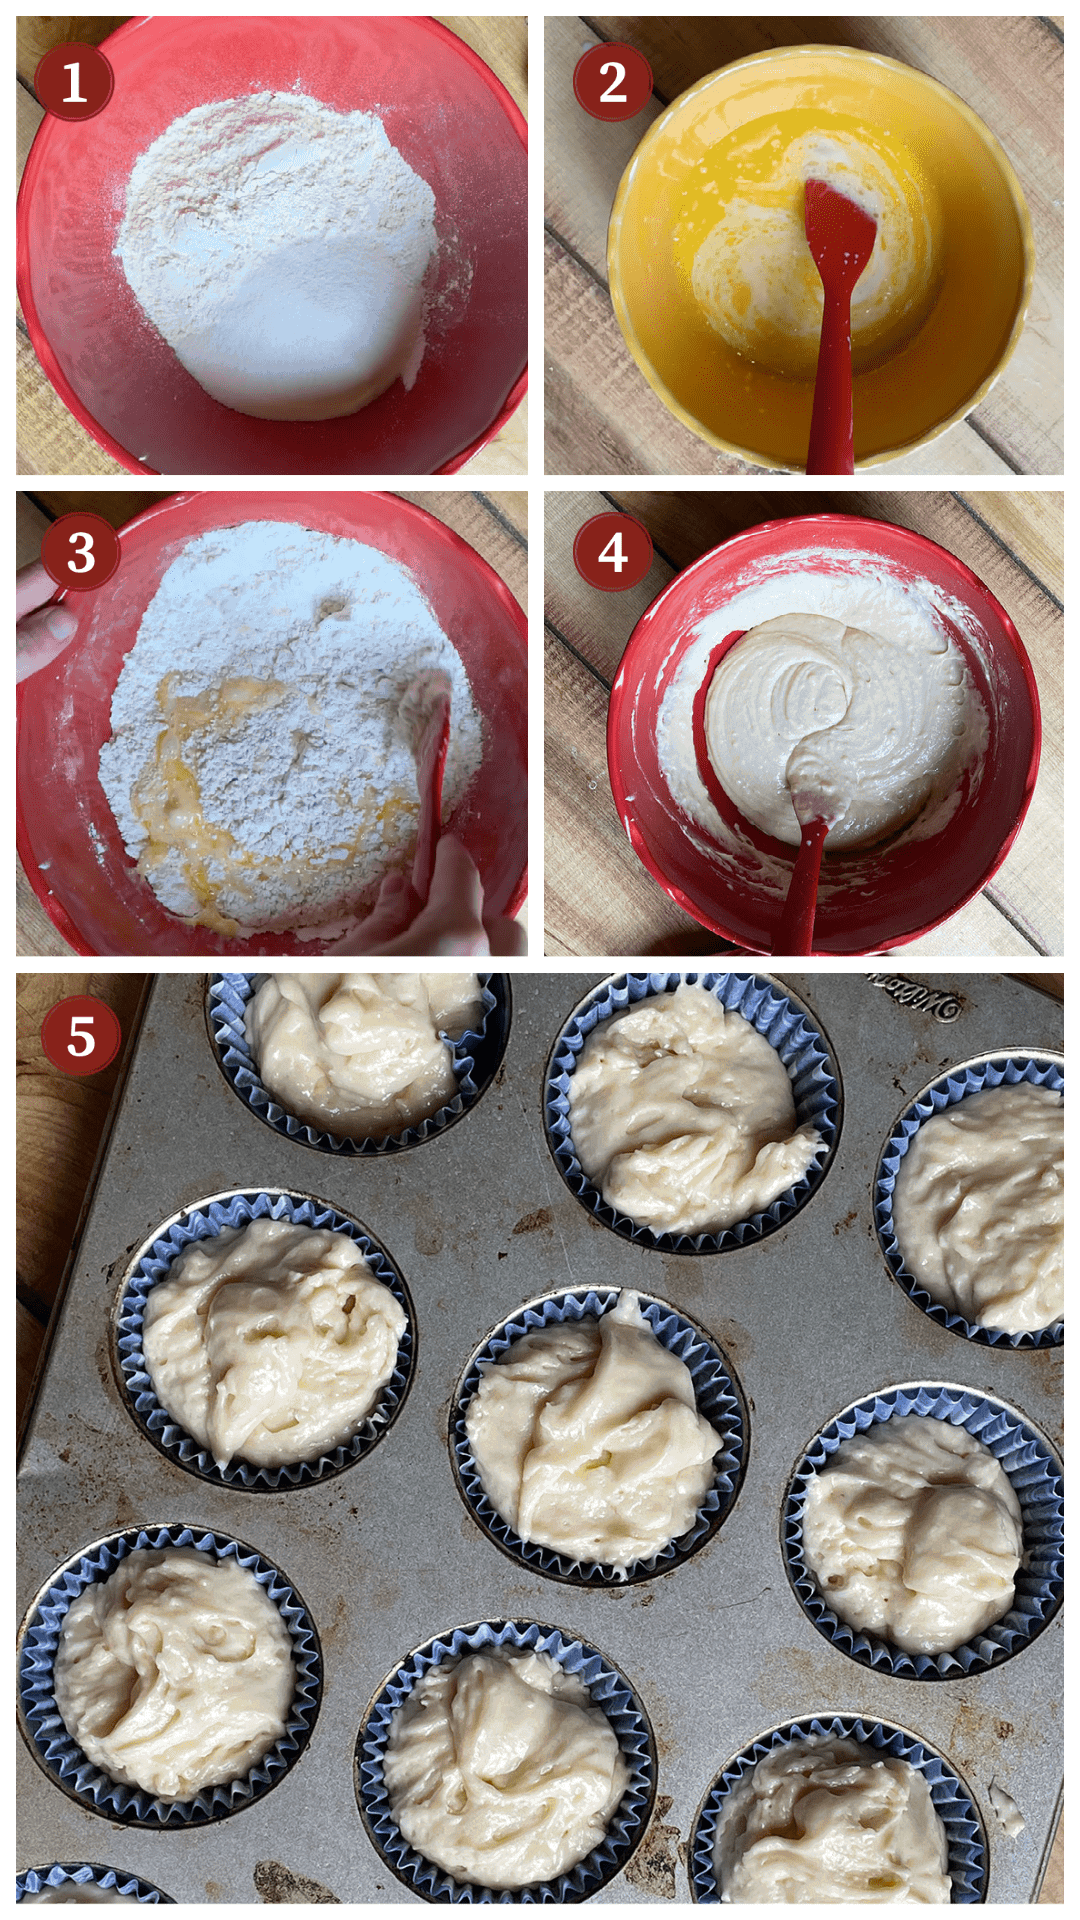 A collage of images showing the process of making buttermilk images, steps 1 - 5.